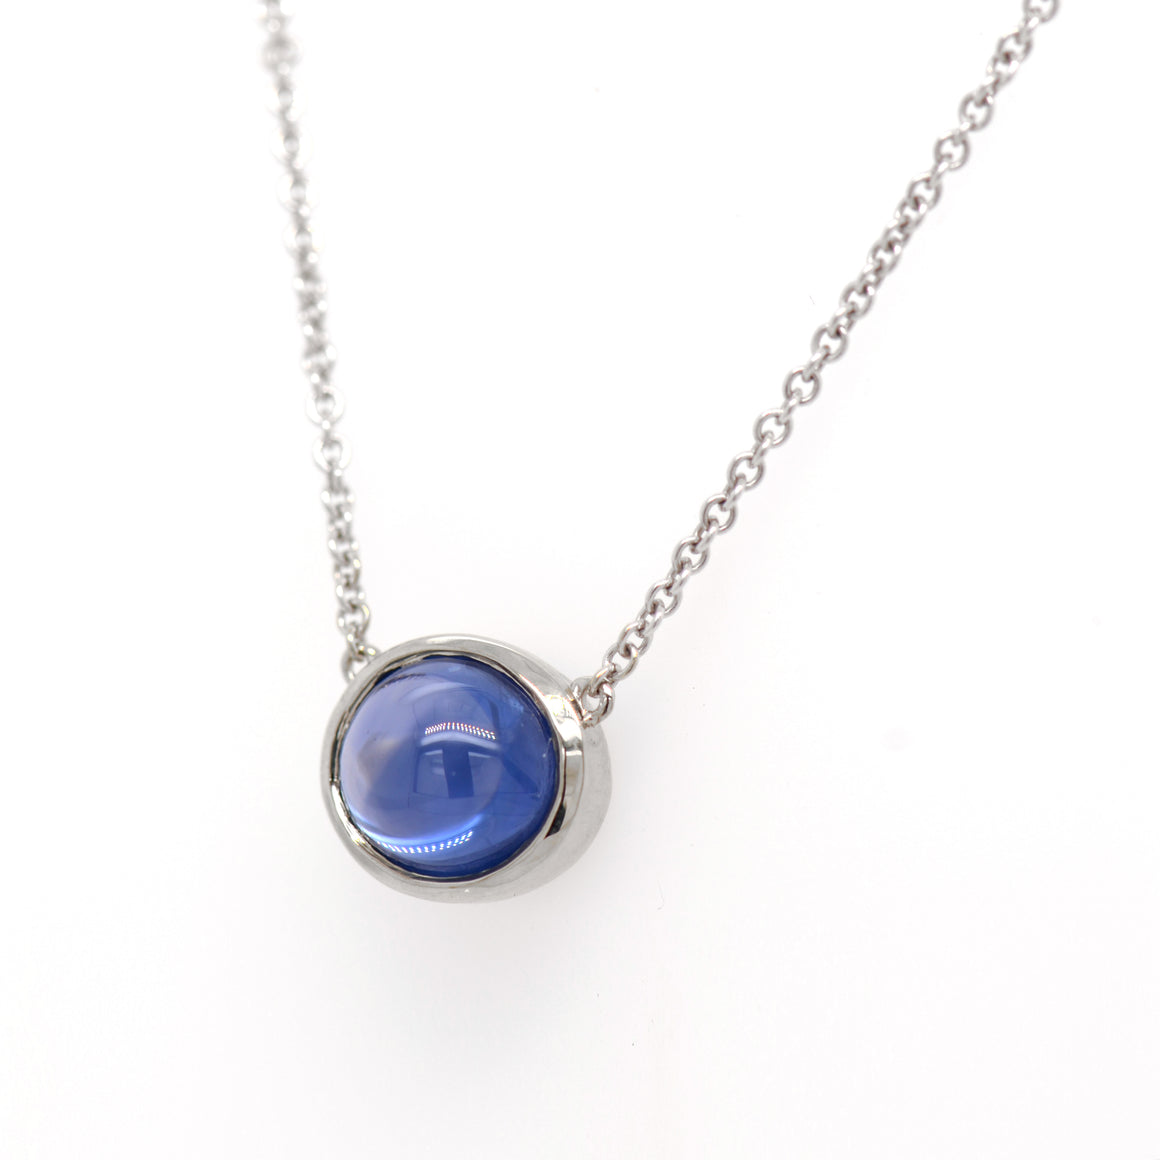 14K White Gold Cabochon Sapphire Necklace